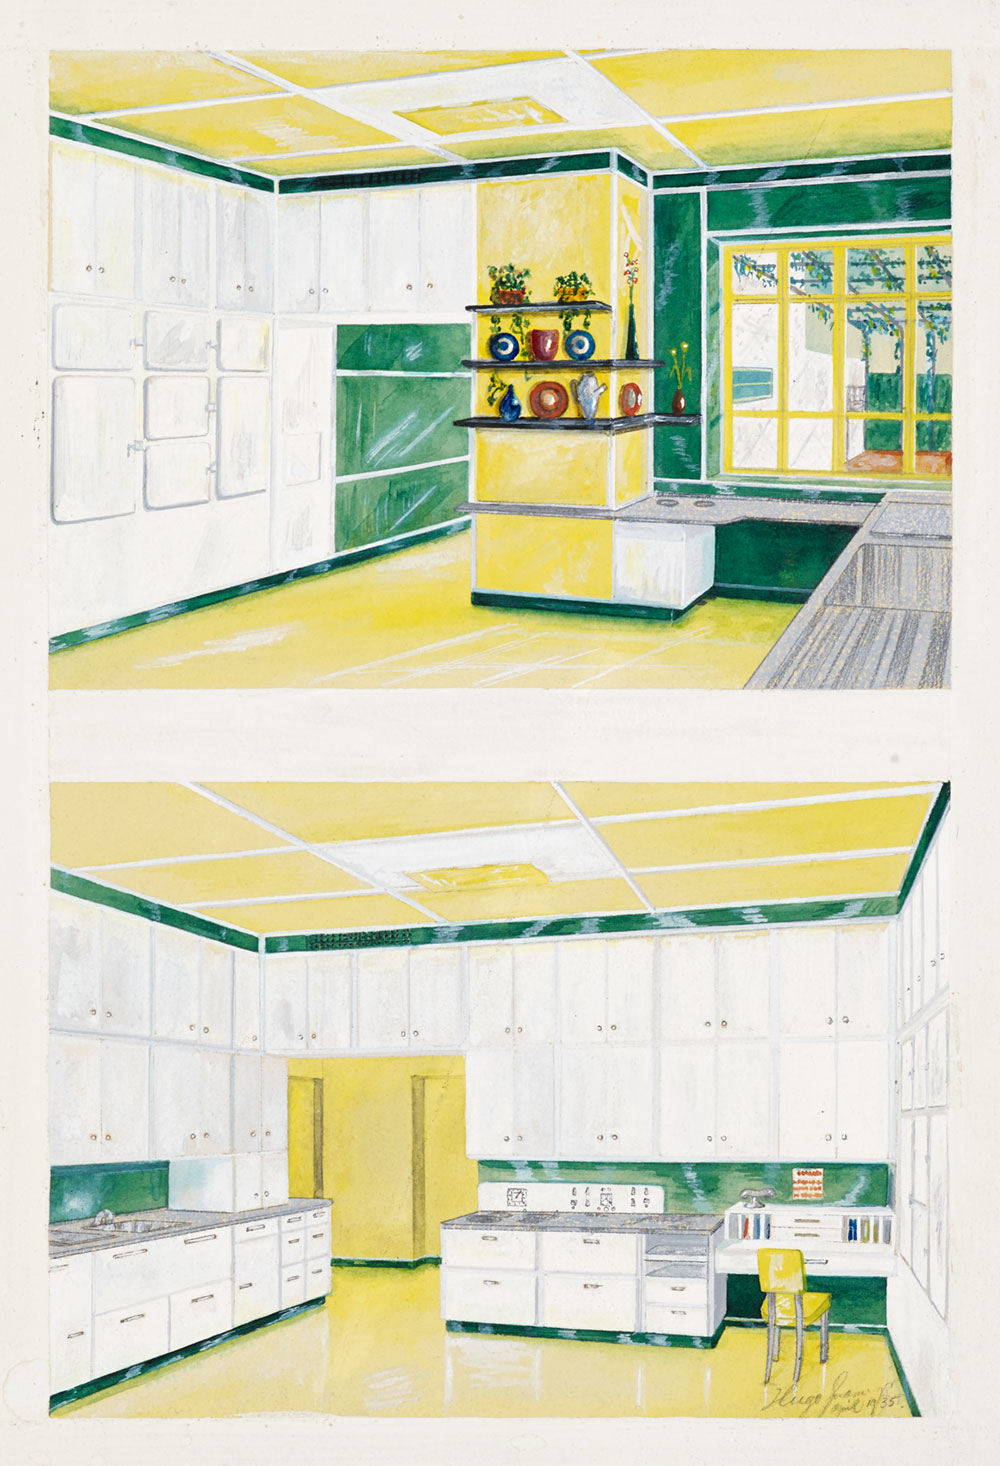 1930s design drawing of a kitchen